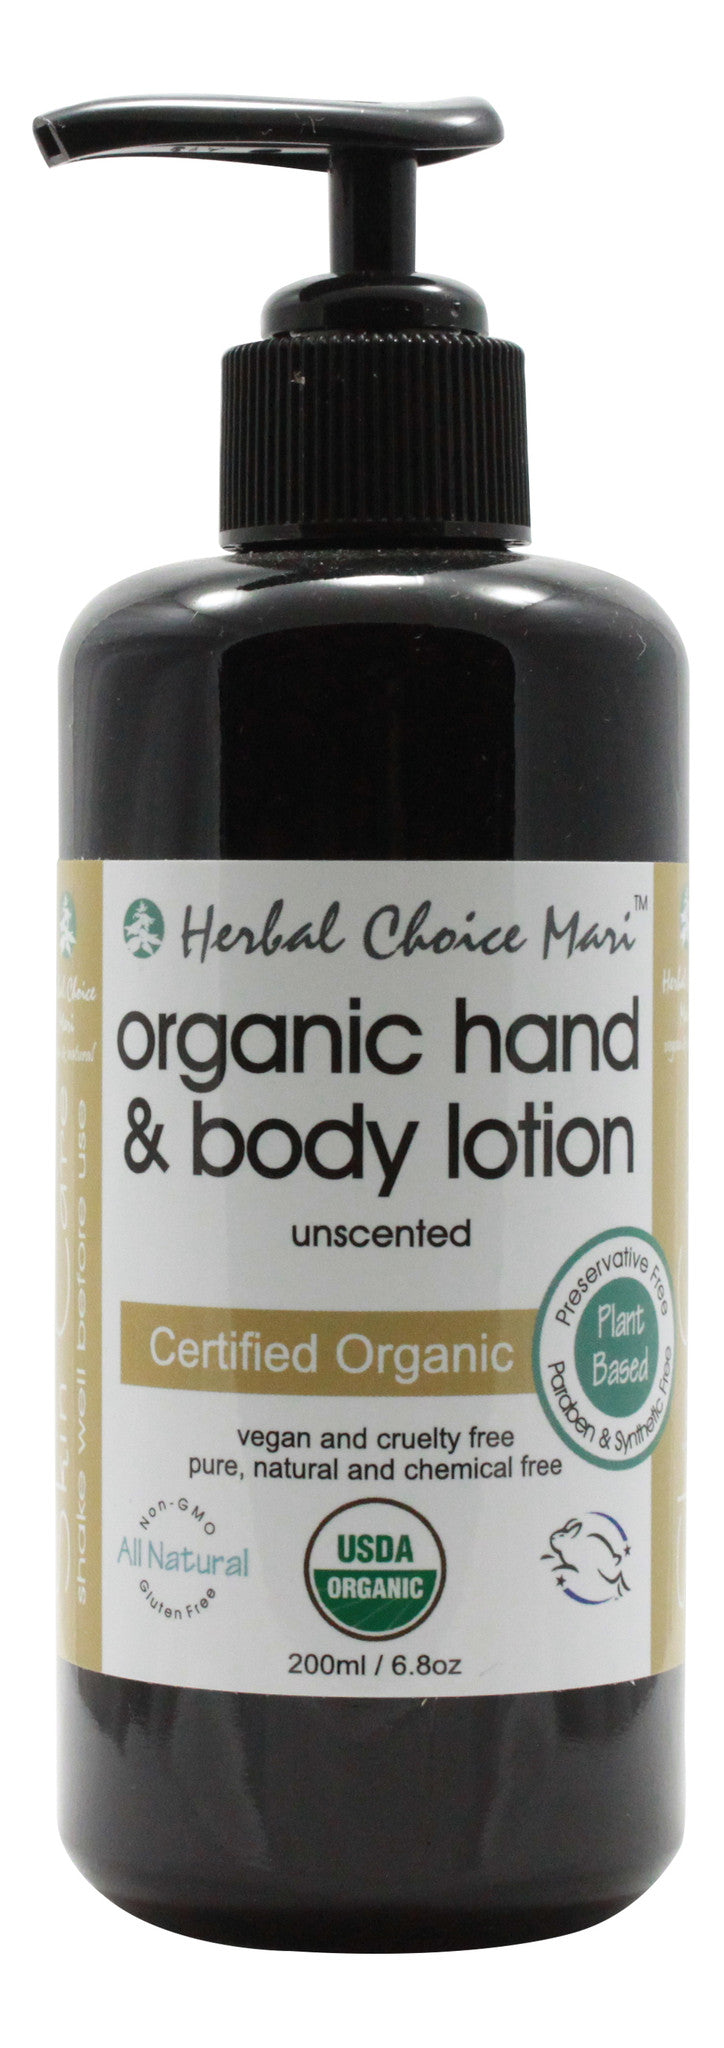 Organic Hand & Body Lotion - Unscented - 6.8 oz - Front